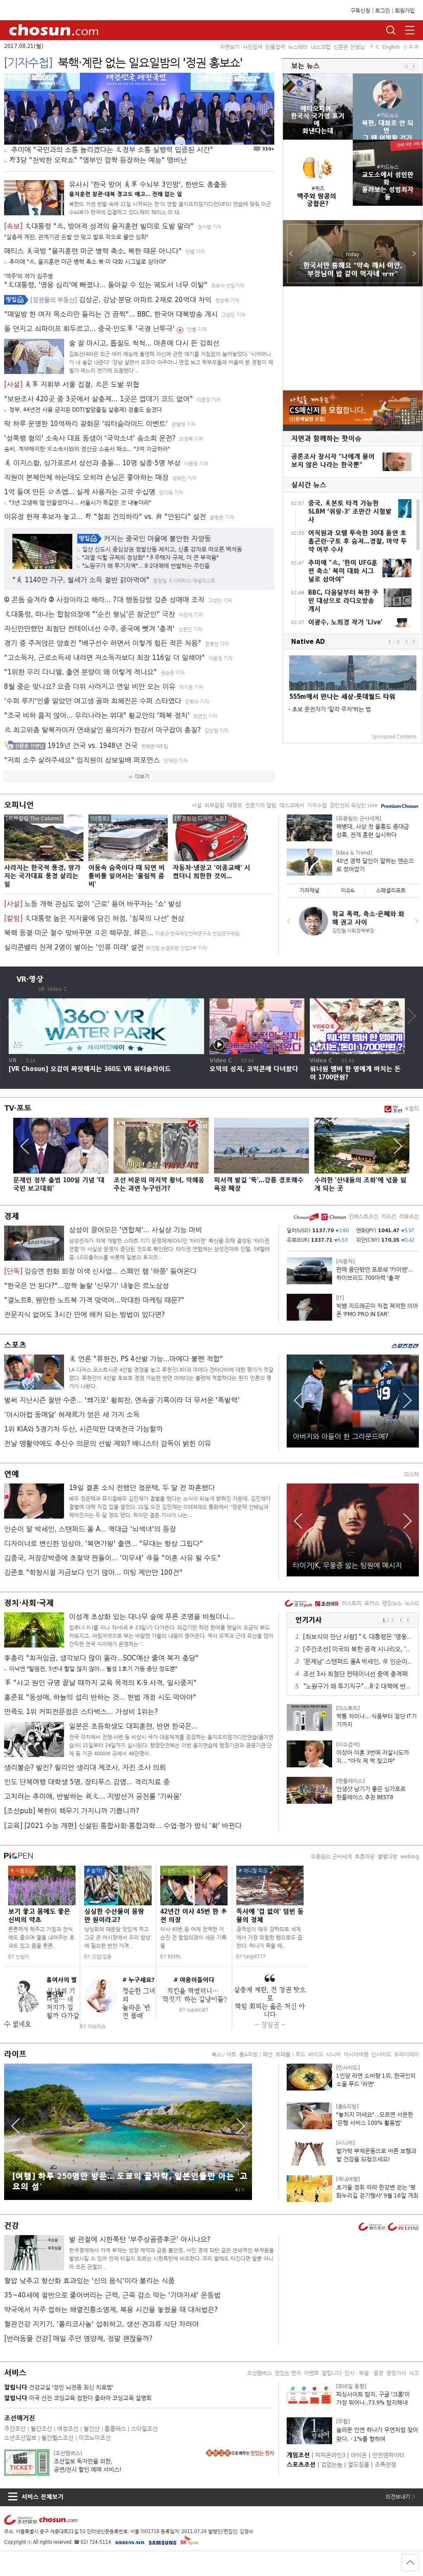 chosun.com at Monday Aug. 21, 2017, 3:02 a.m. UTC